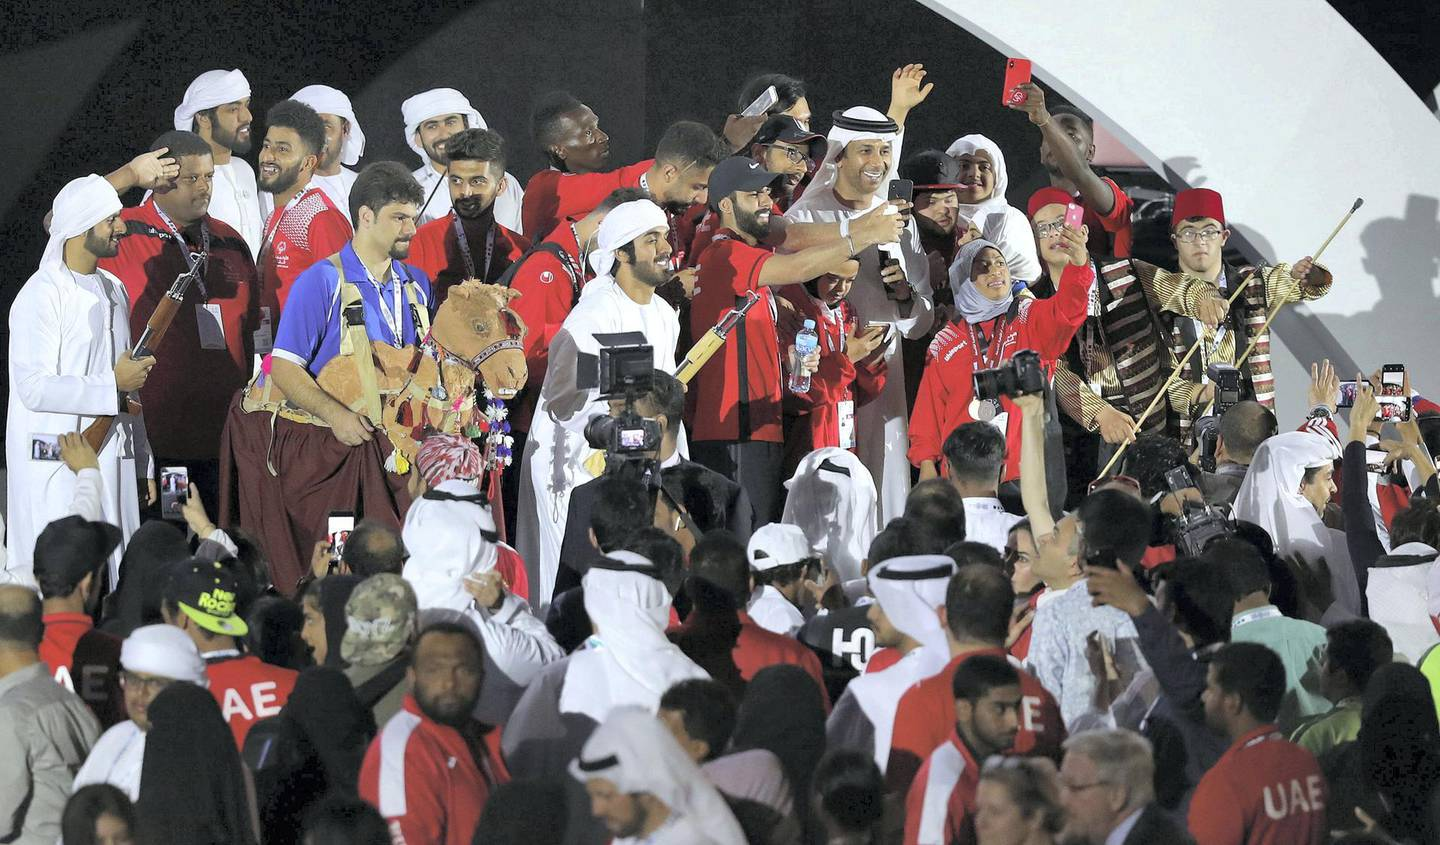 Abu Dhabi, United Arab Emirates - March 22nd, 2018: The UAE team celebrate at the concert at the Closing Ceremony of the Special Olympics Regional Games. Thursday, March 22nd, 2018. ADNEC, Abu Dhabi. Chris Whiteoak / The National